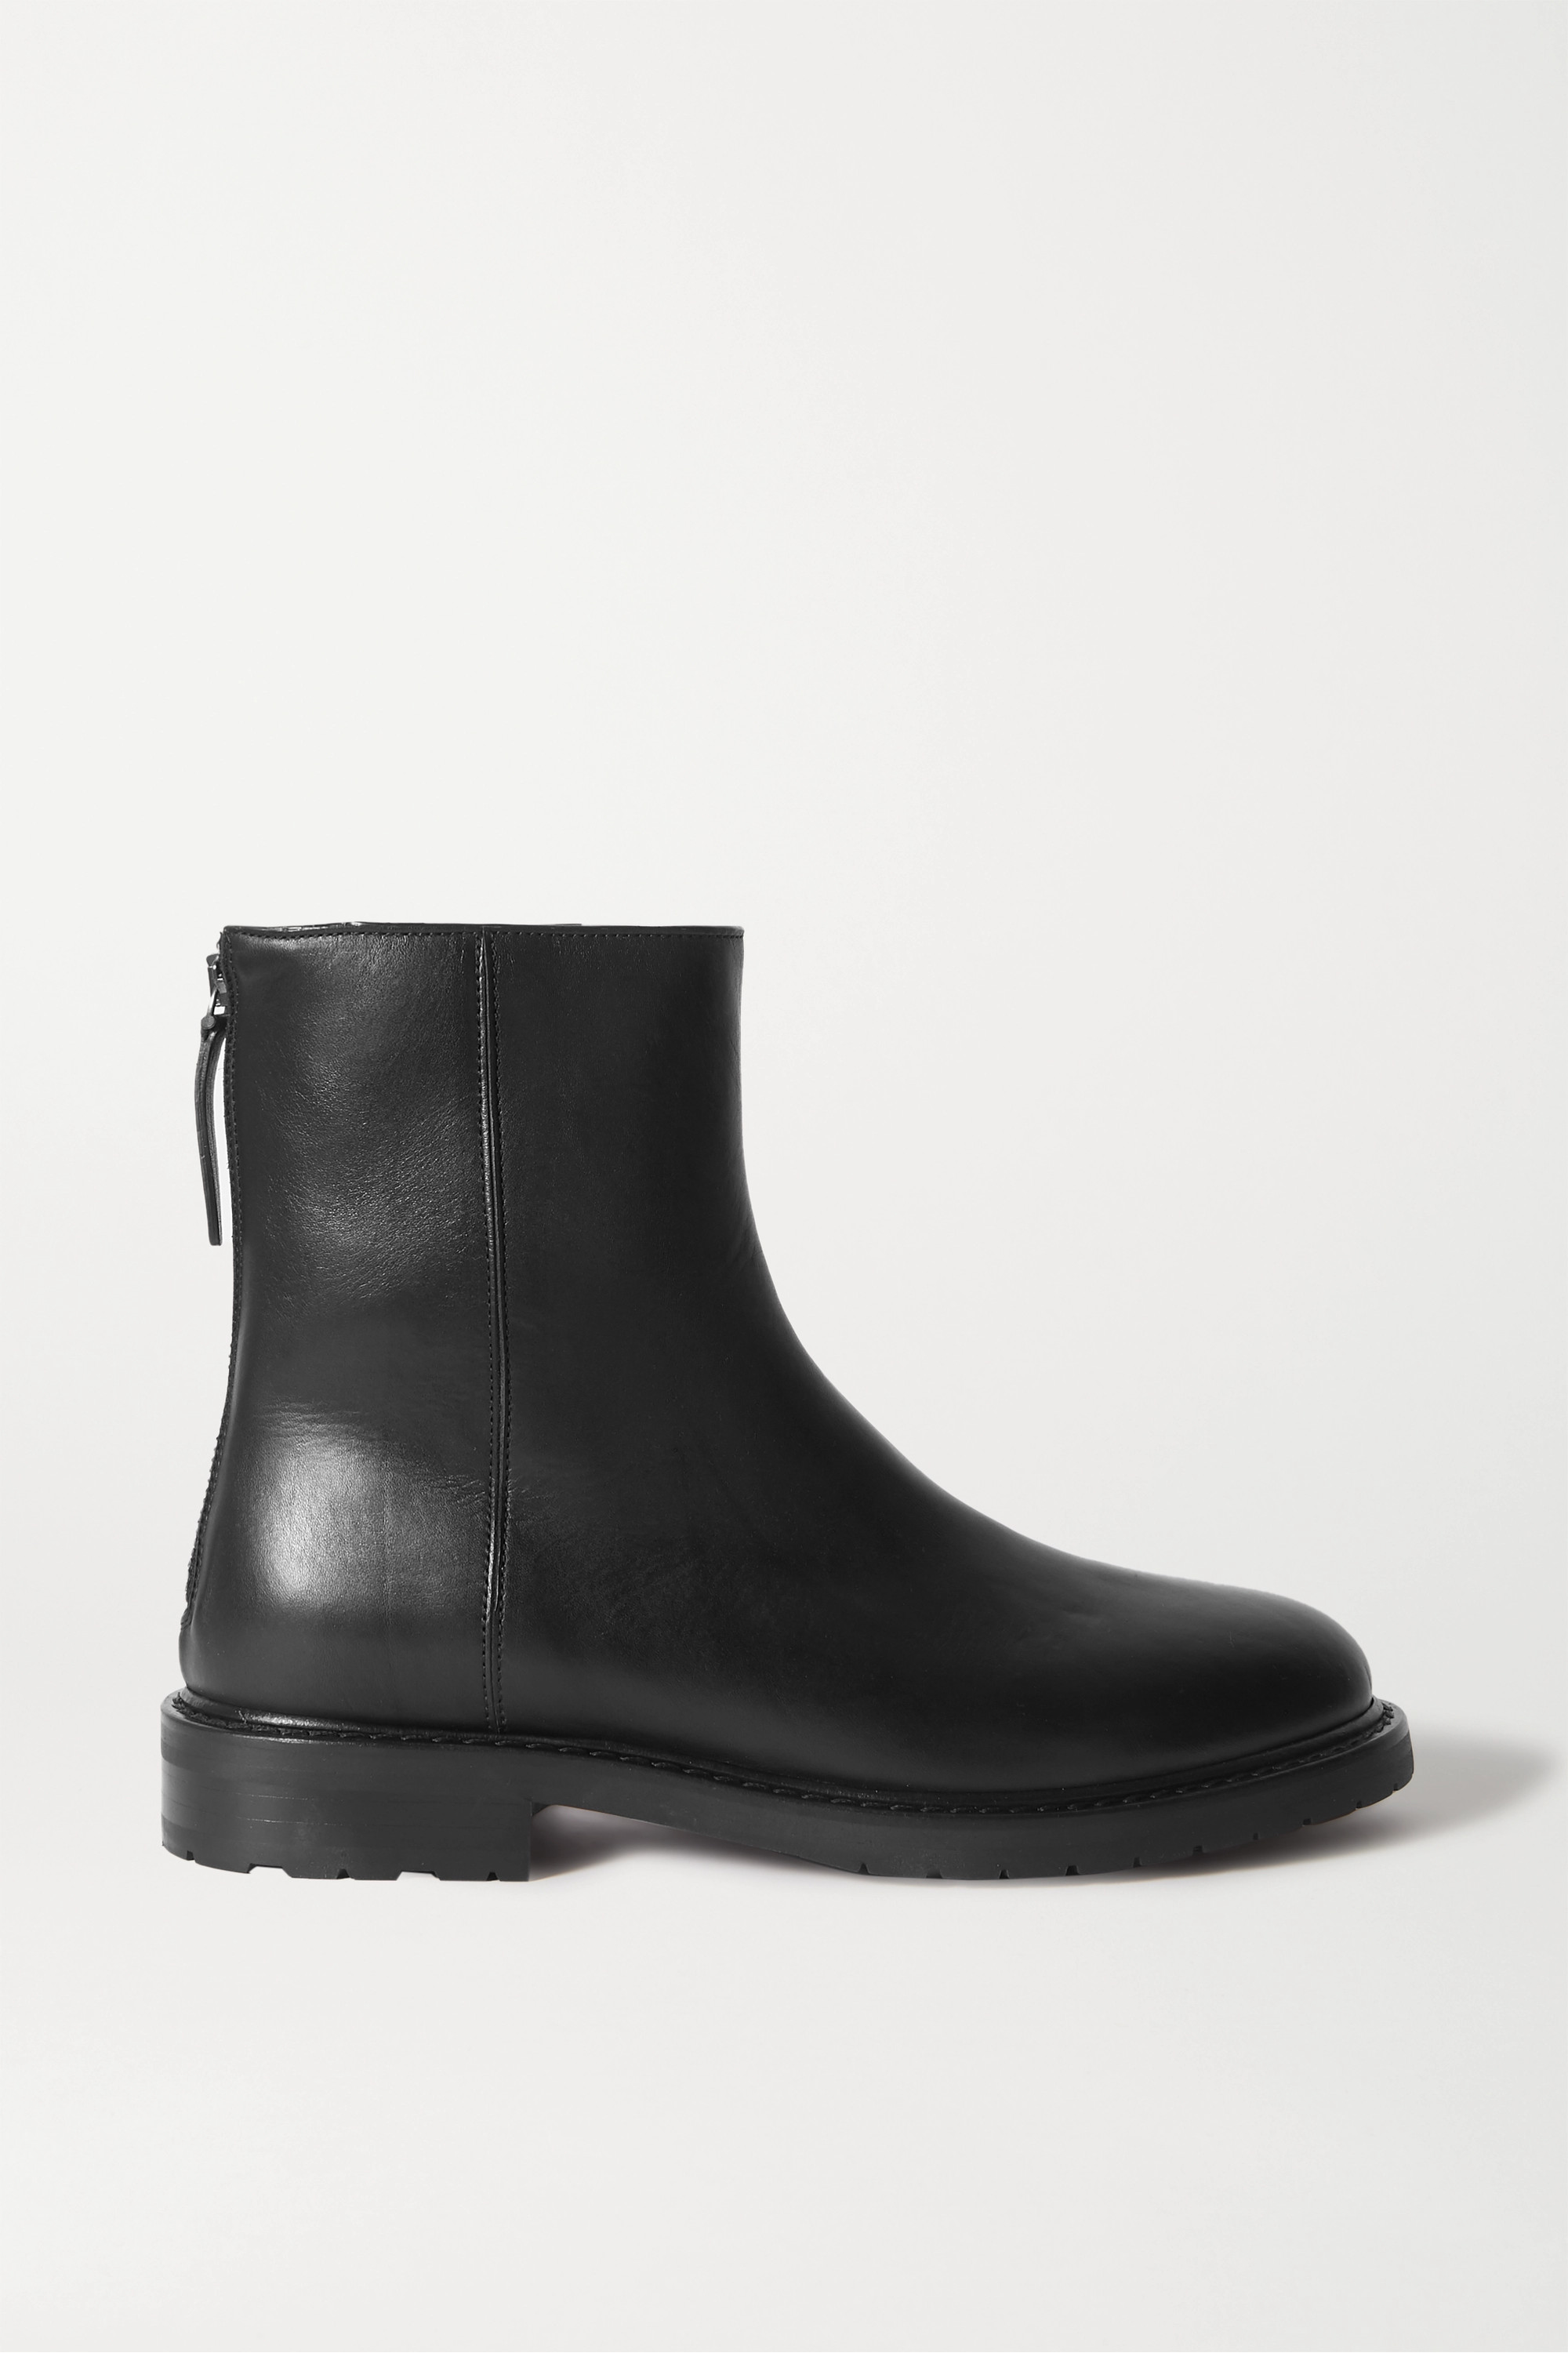 Leather Chelsea Boots by Tamaris   Look